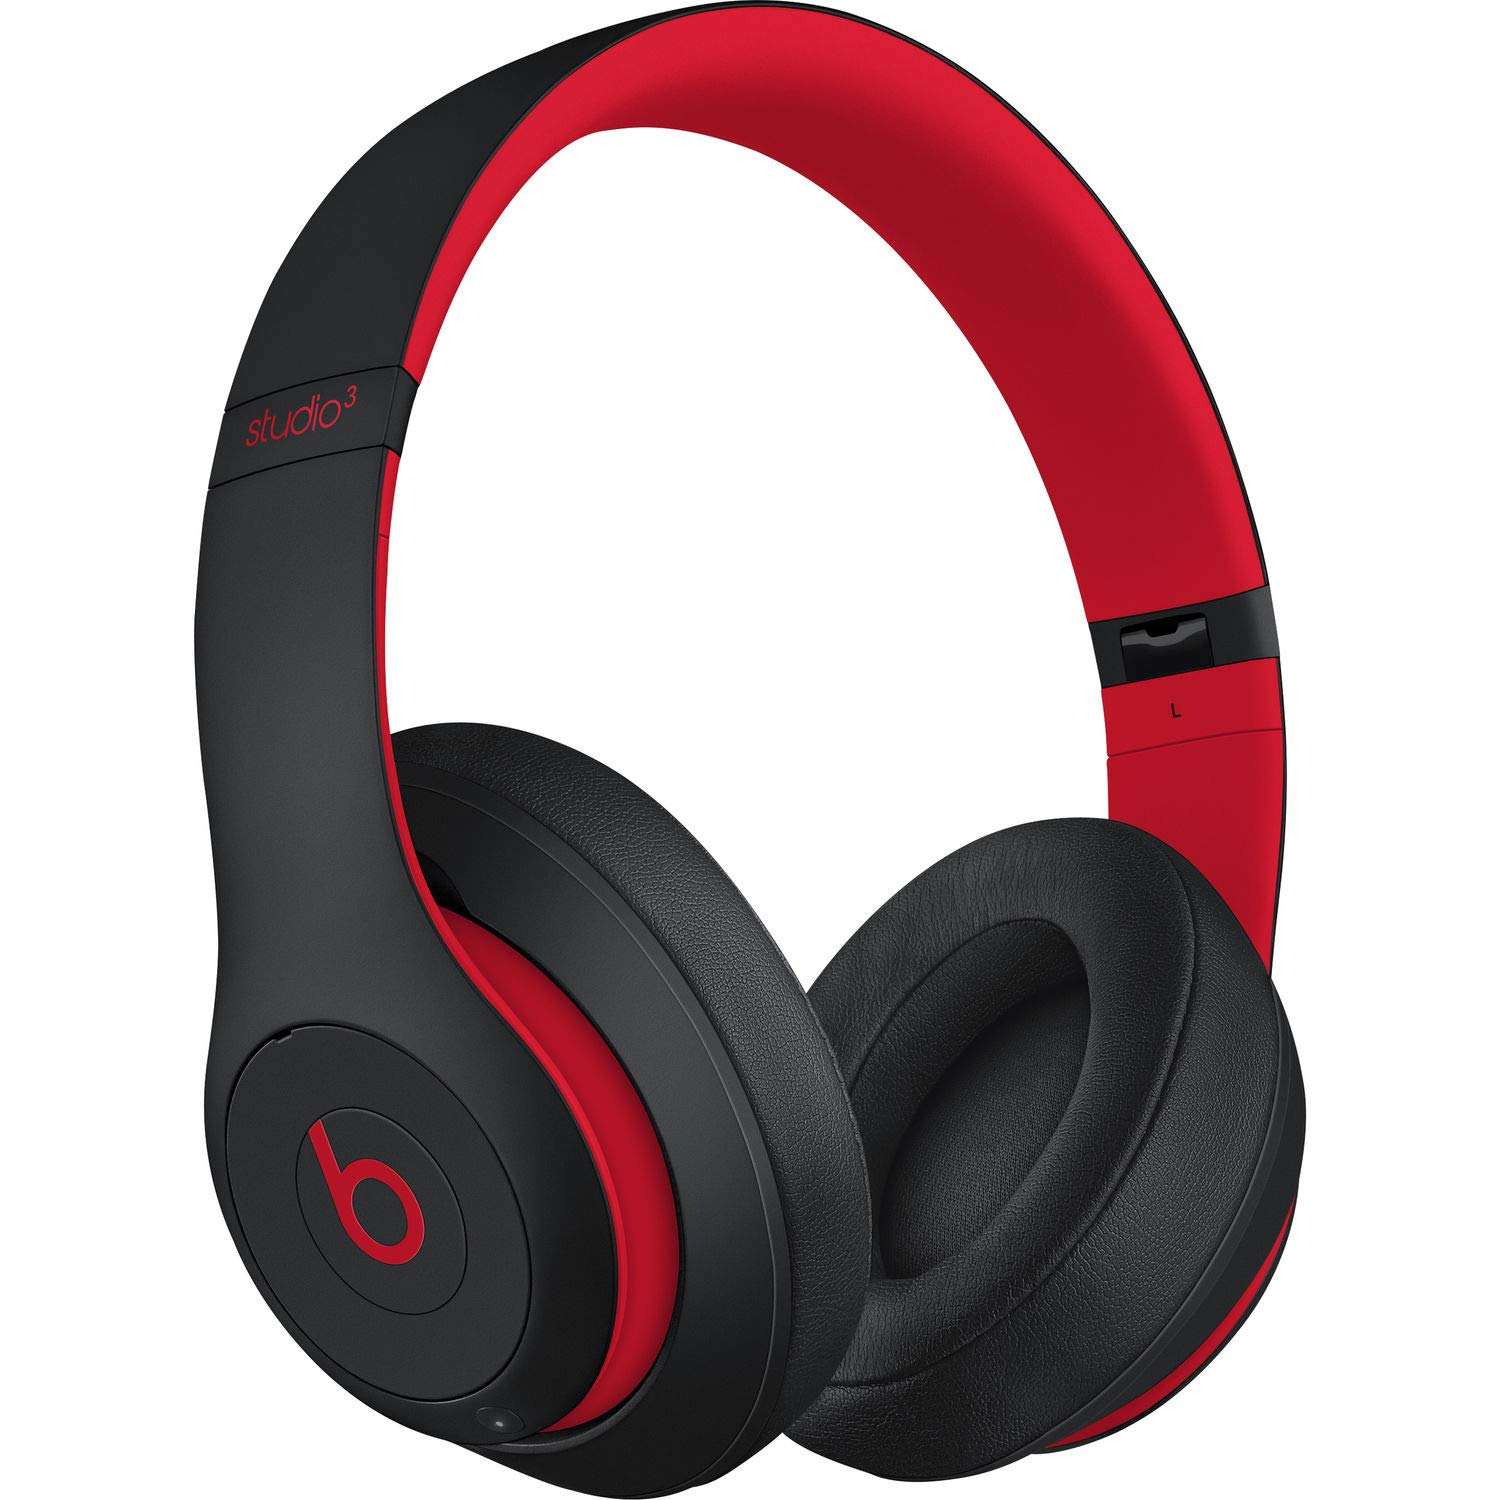 S t u d i o 3 Wireless Over Ear Headphone Decade Collection Defiant Black Red with Carrying case